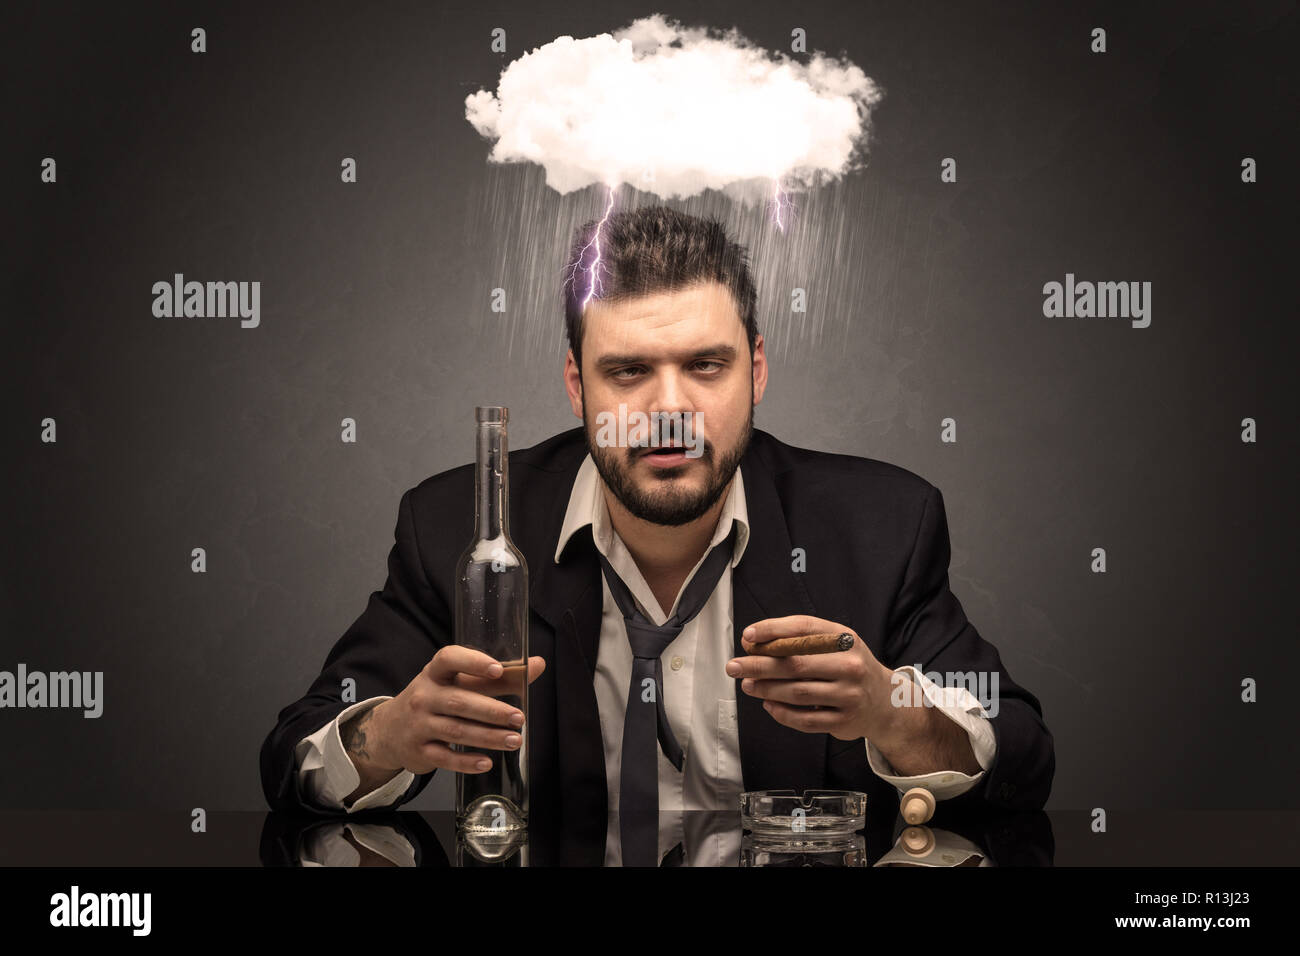 Young drunk disappointed man with hard time overcast concept  - Stock Image